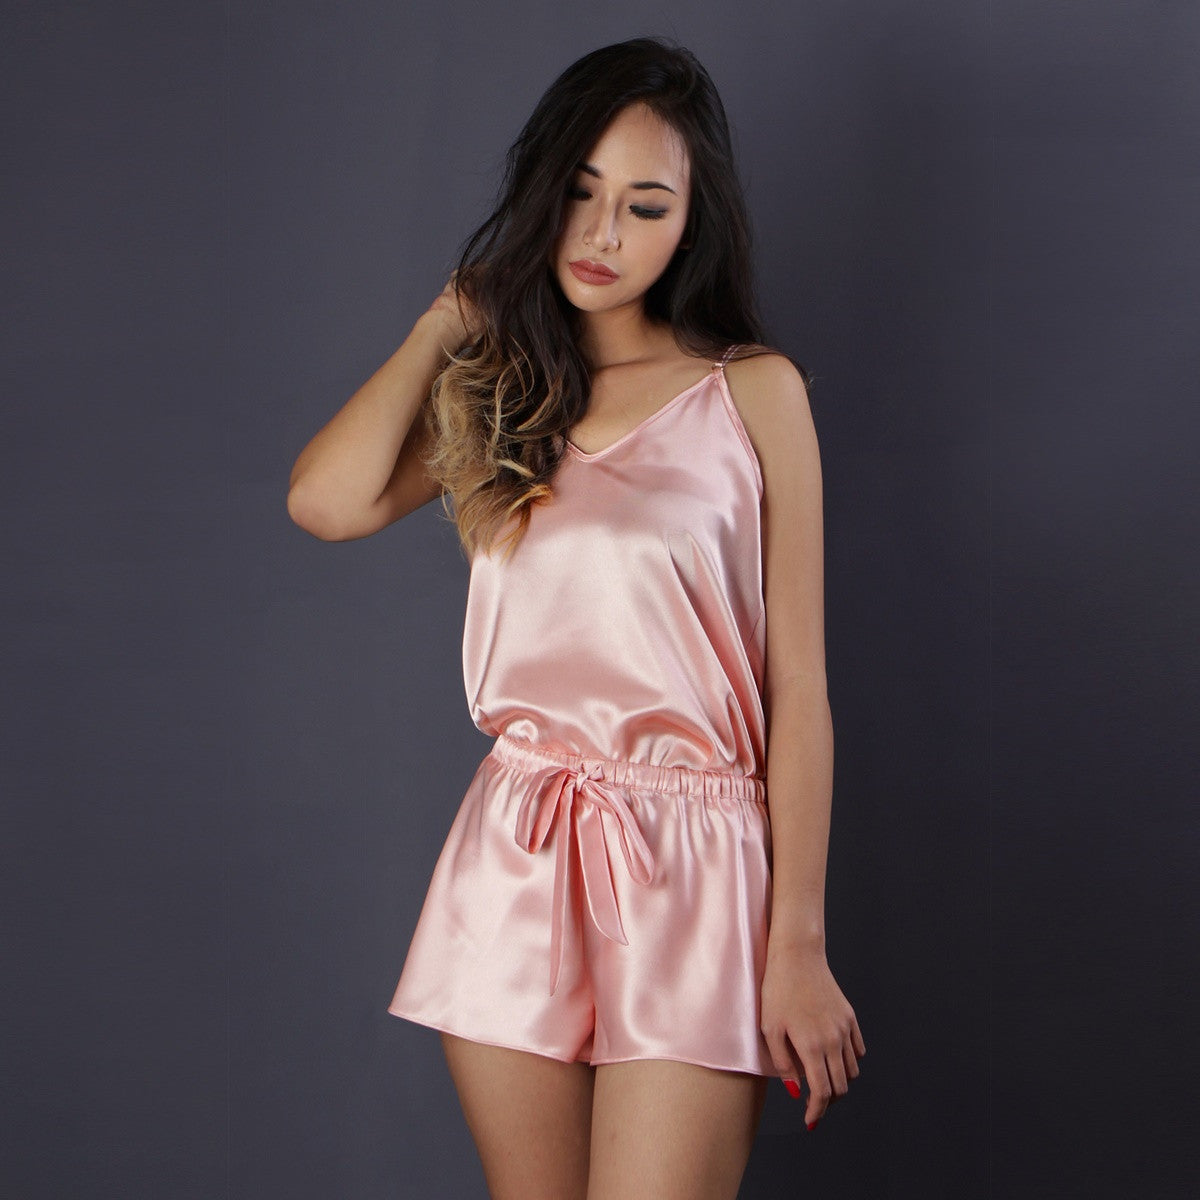 Peach satin pajama set, Satin camisole set, Lounge wear, Satin nightwear, Sleepwear, Loungewear, Camisole top, Camisole short byb Ange Dechu